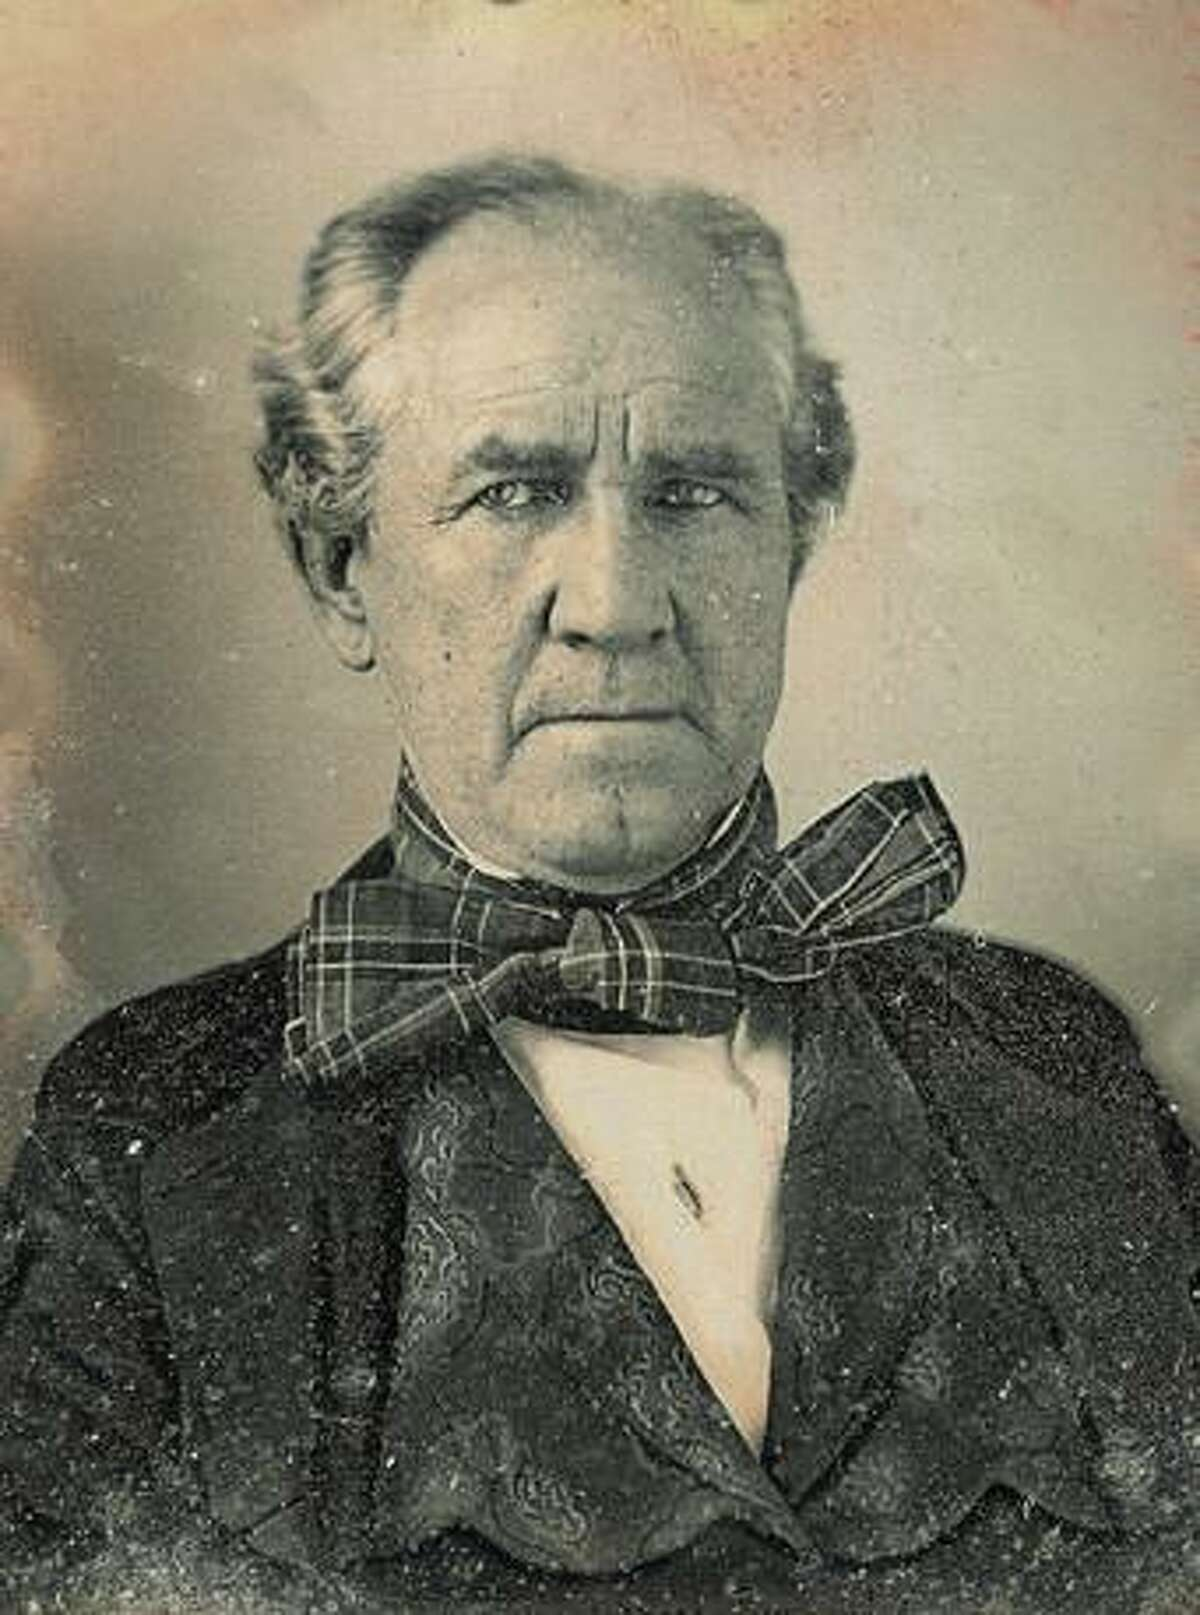 """Samuel """"Sam"""" Houston (March 2, 1793 - July 26, 1863) was an American politician and soldier, best known for his role in bringing Texas into the United States as a constituent state. His victory at the Battle of San Jacinto secured the independence of Texas from Mexico."""